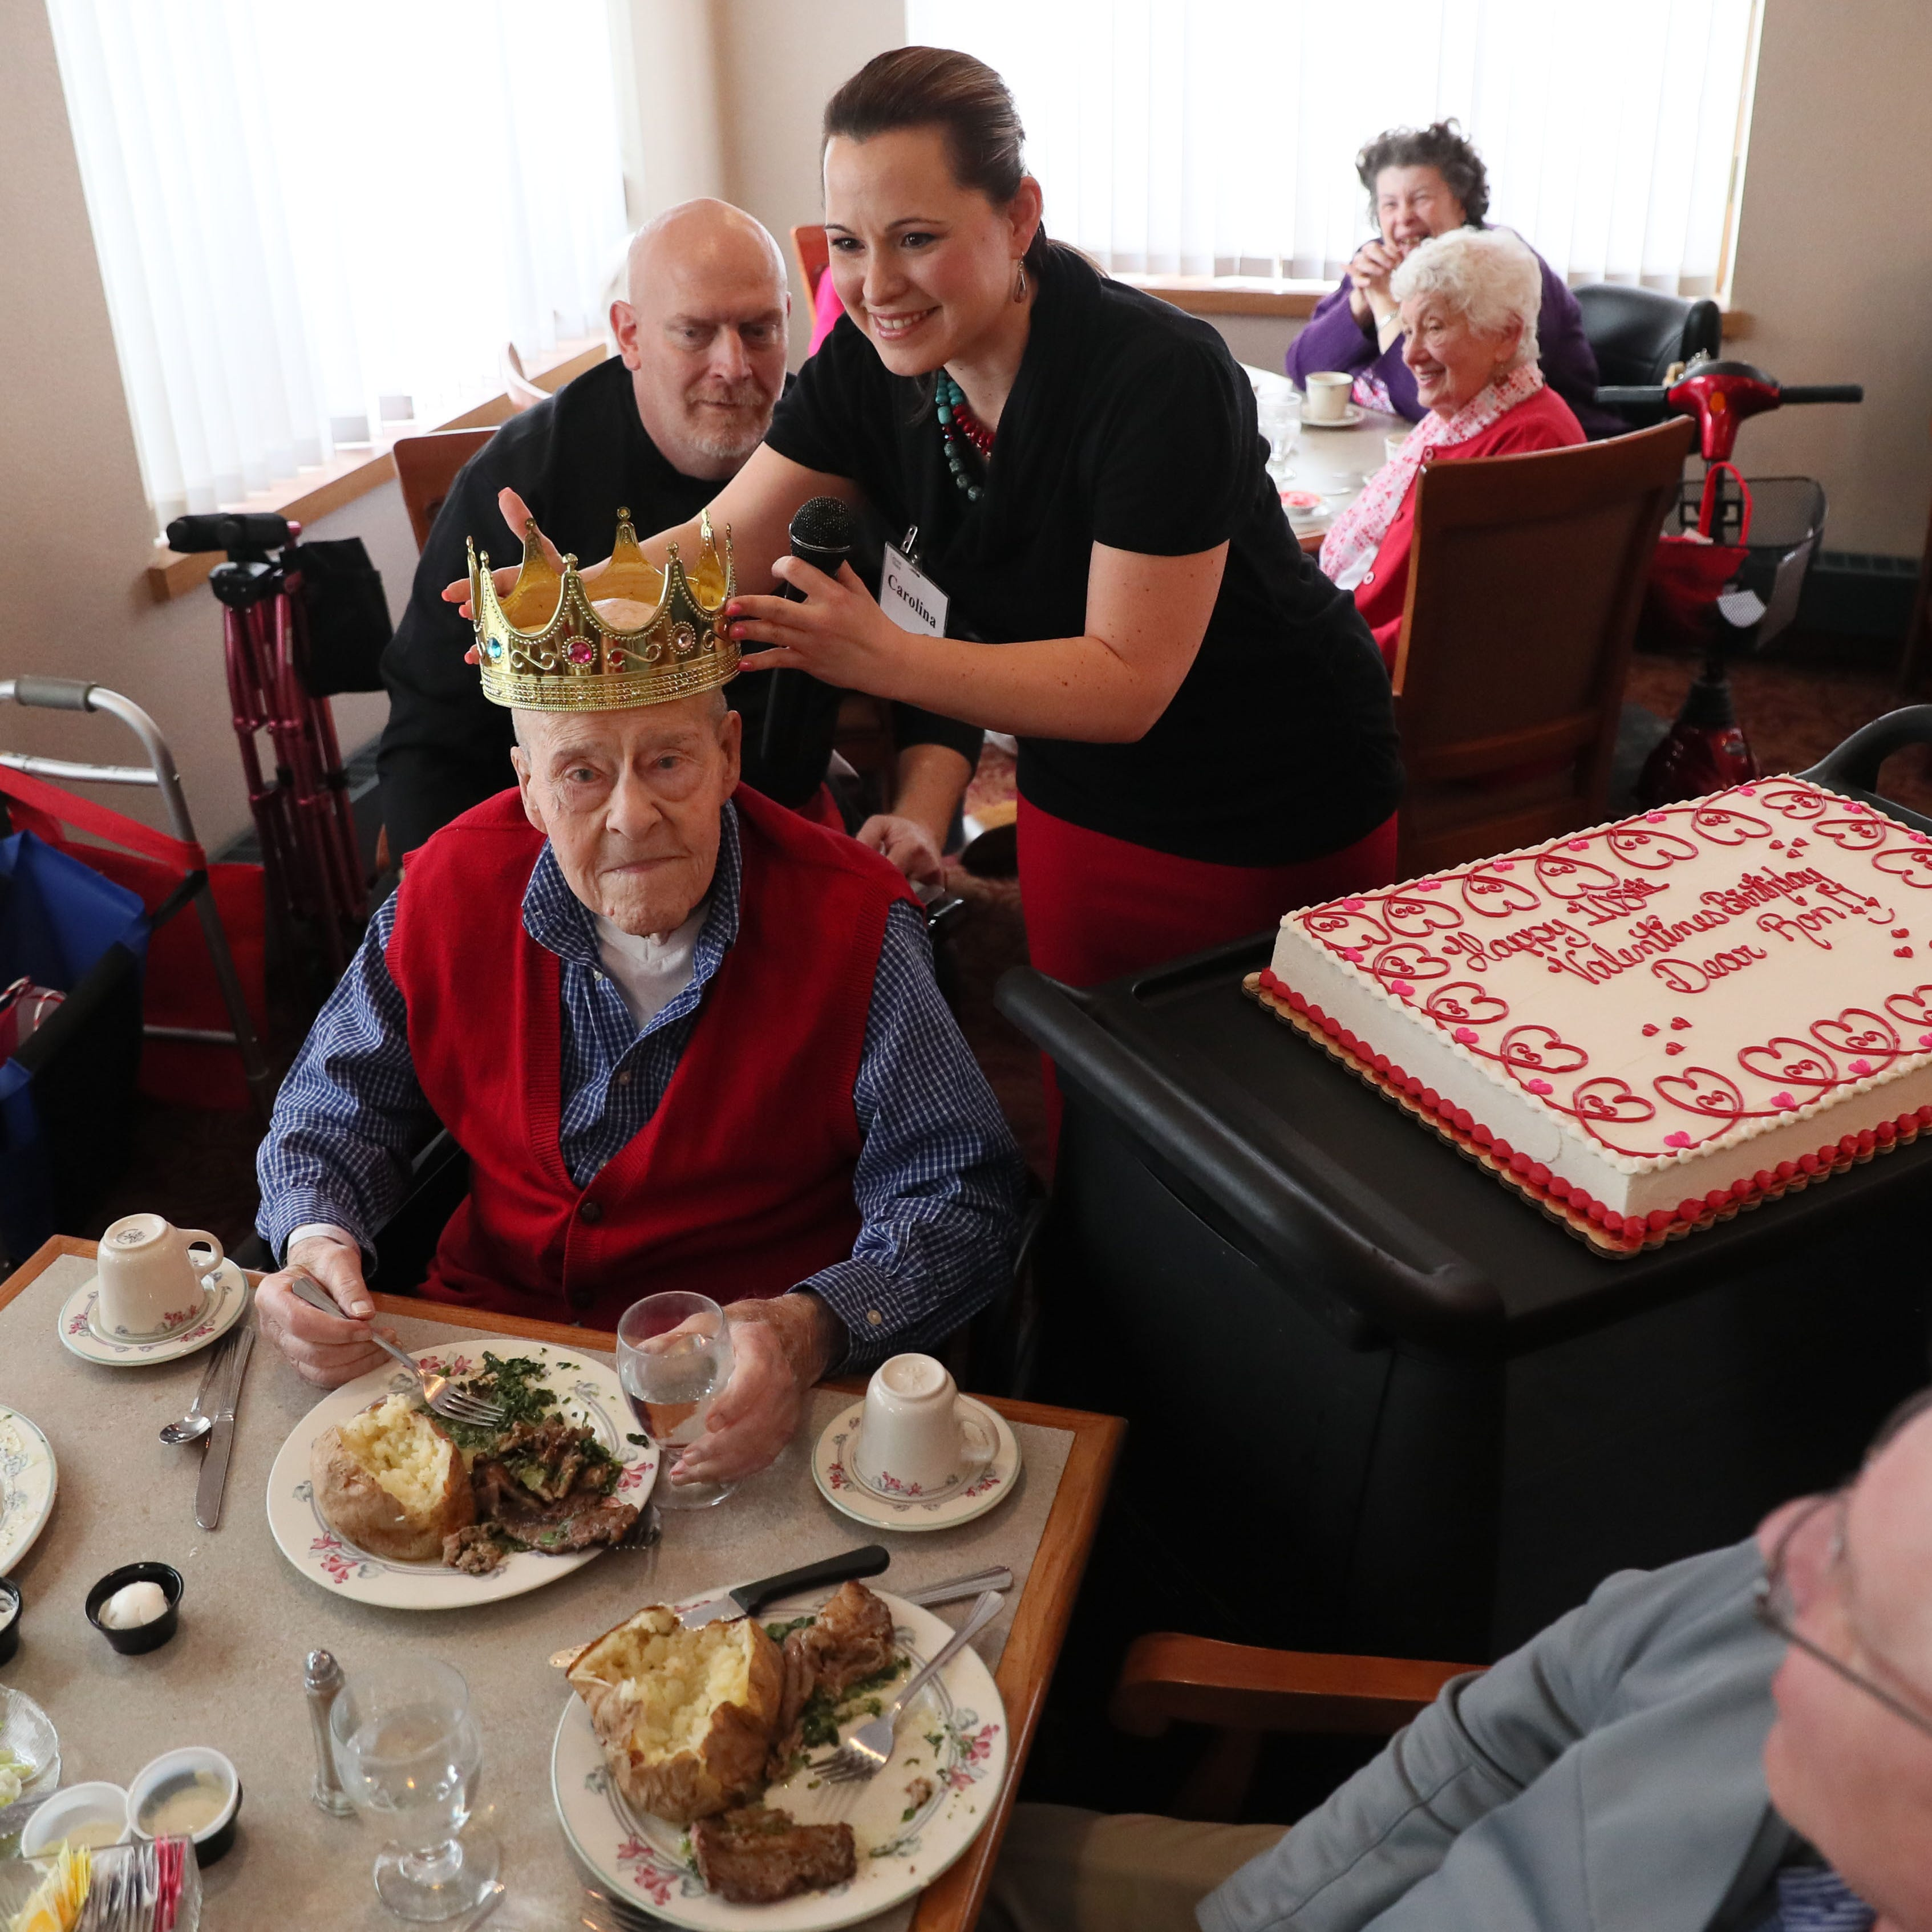 Stingl: Ron Schwartz got a second wind when he reached 100. Now he's 108 and going strong.